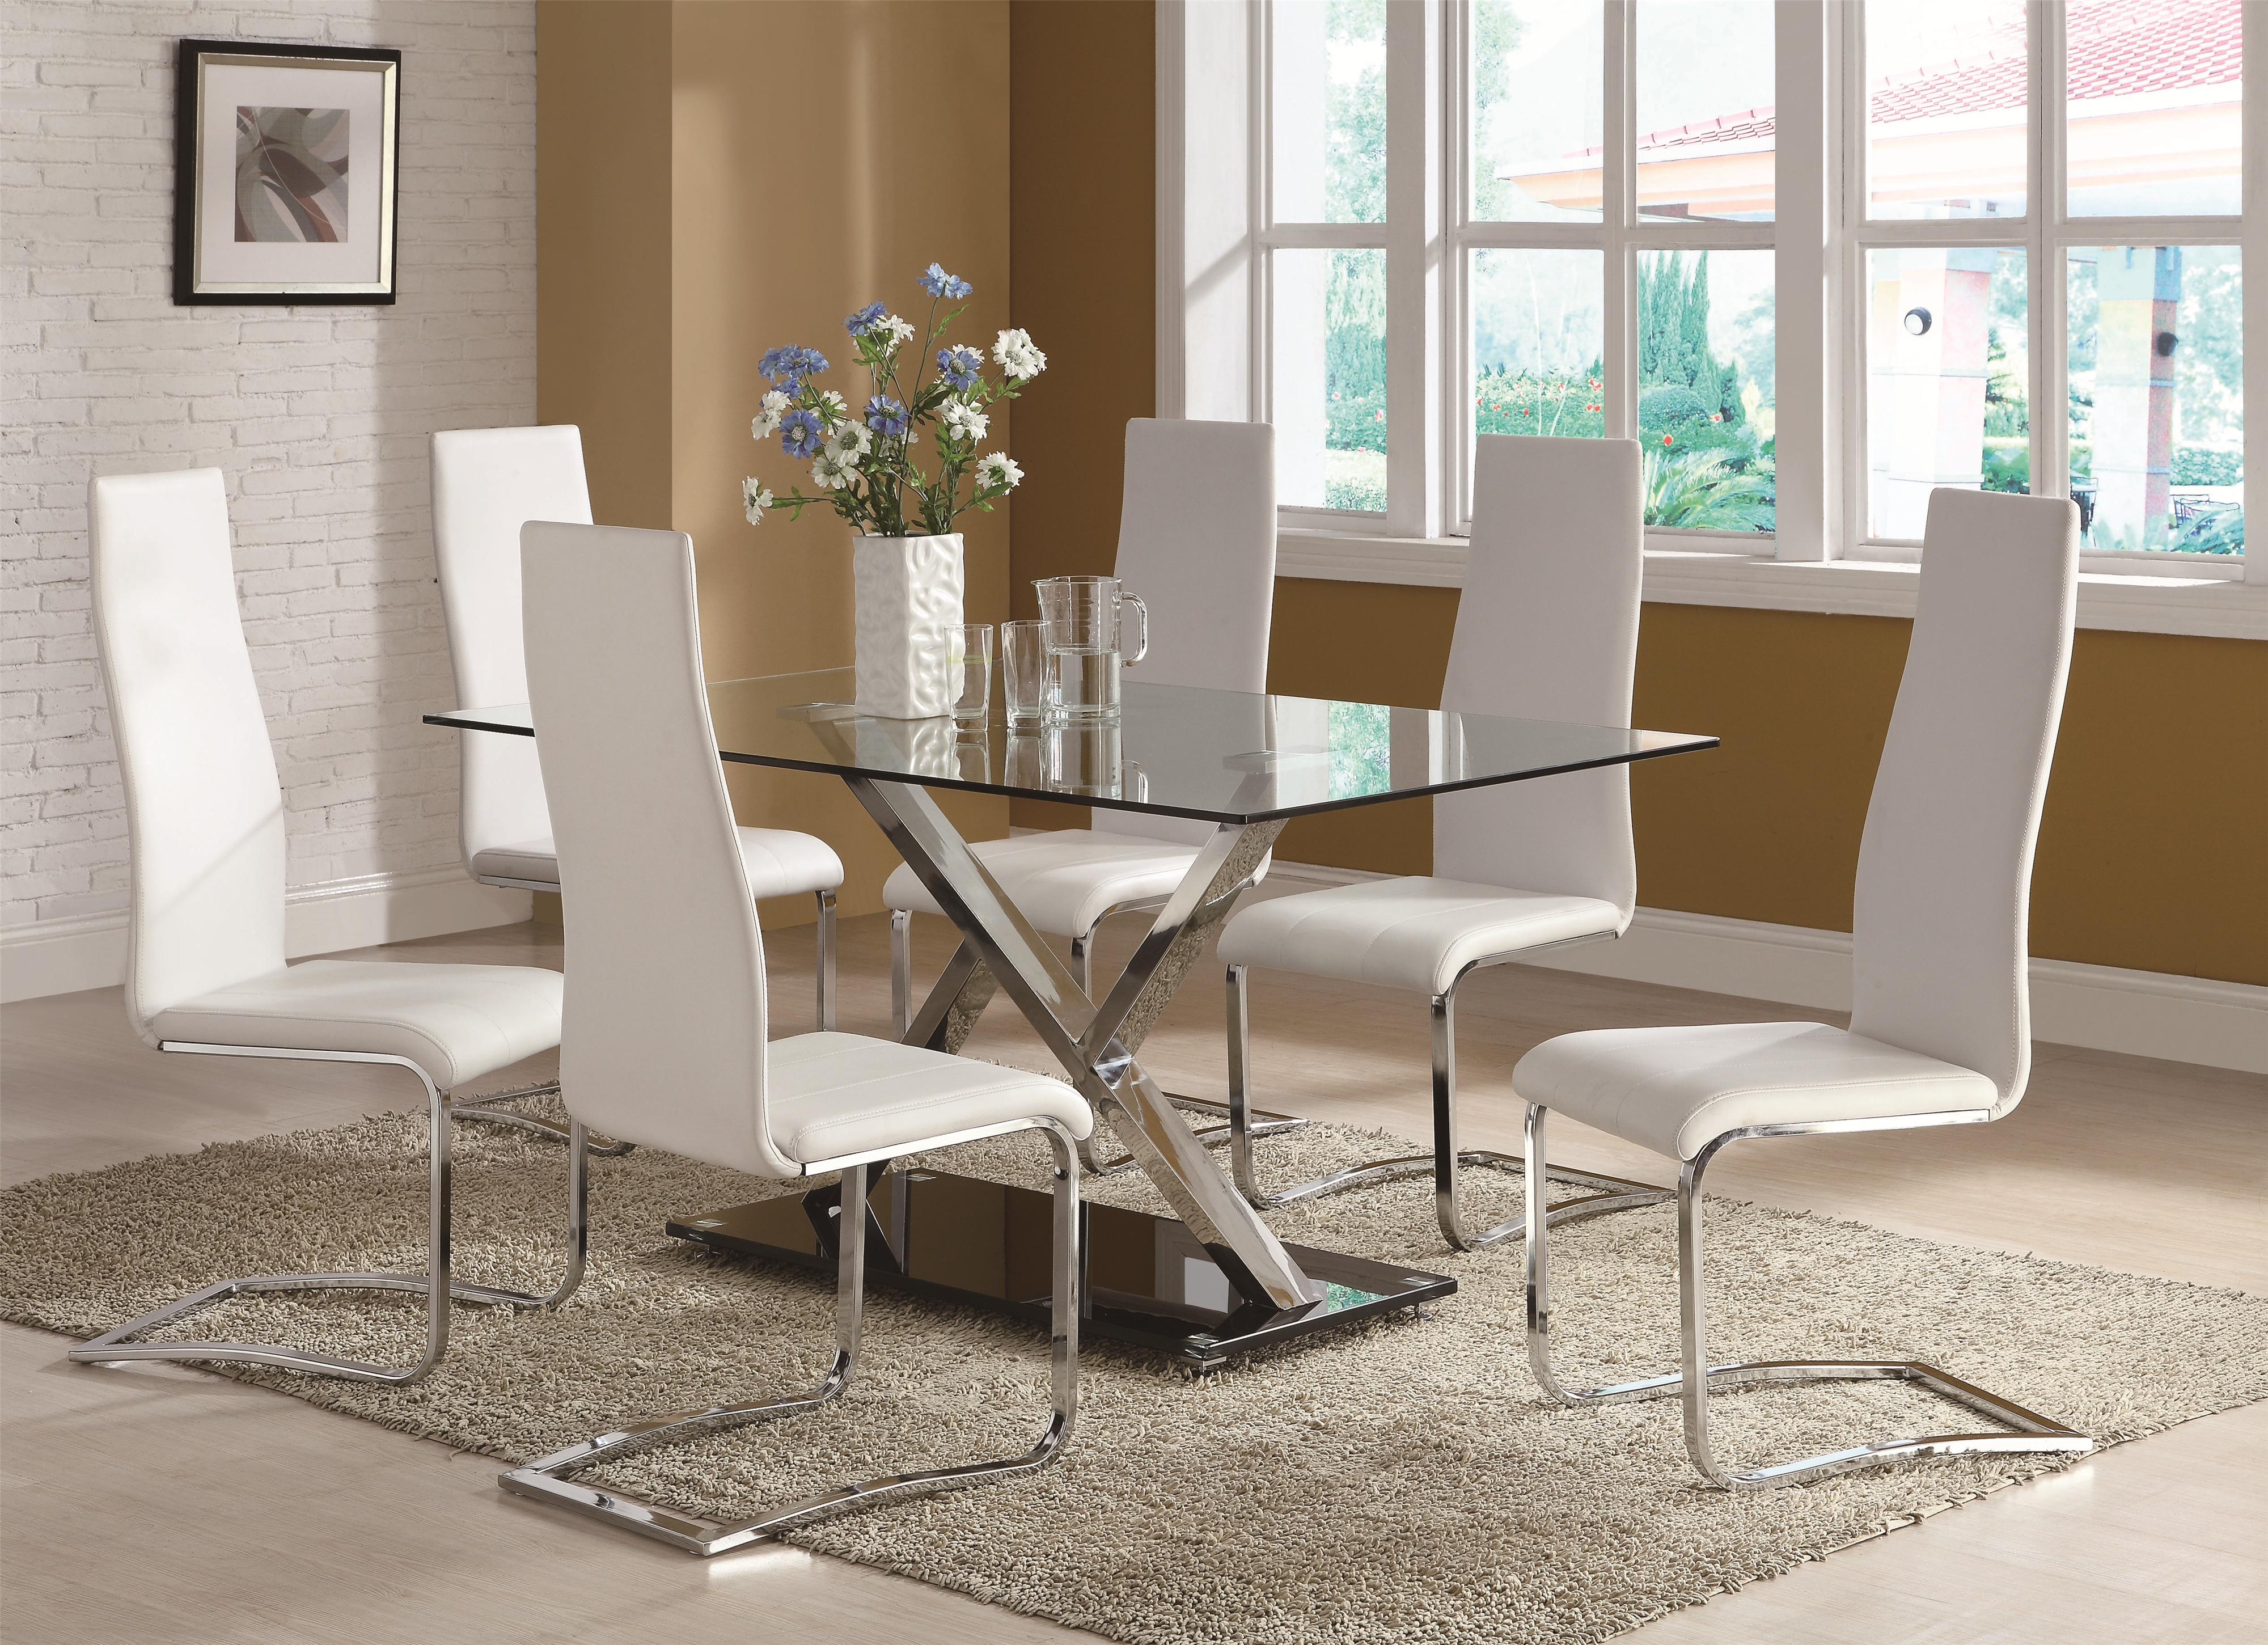 Coaster Modern Dining Contemporary Dining Room Set With Glass Table    Coaster Fine Furniture. Coaster Modern Dining Contemporary Dining Room Set With Glass